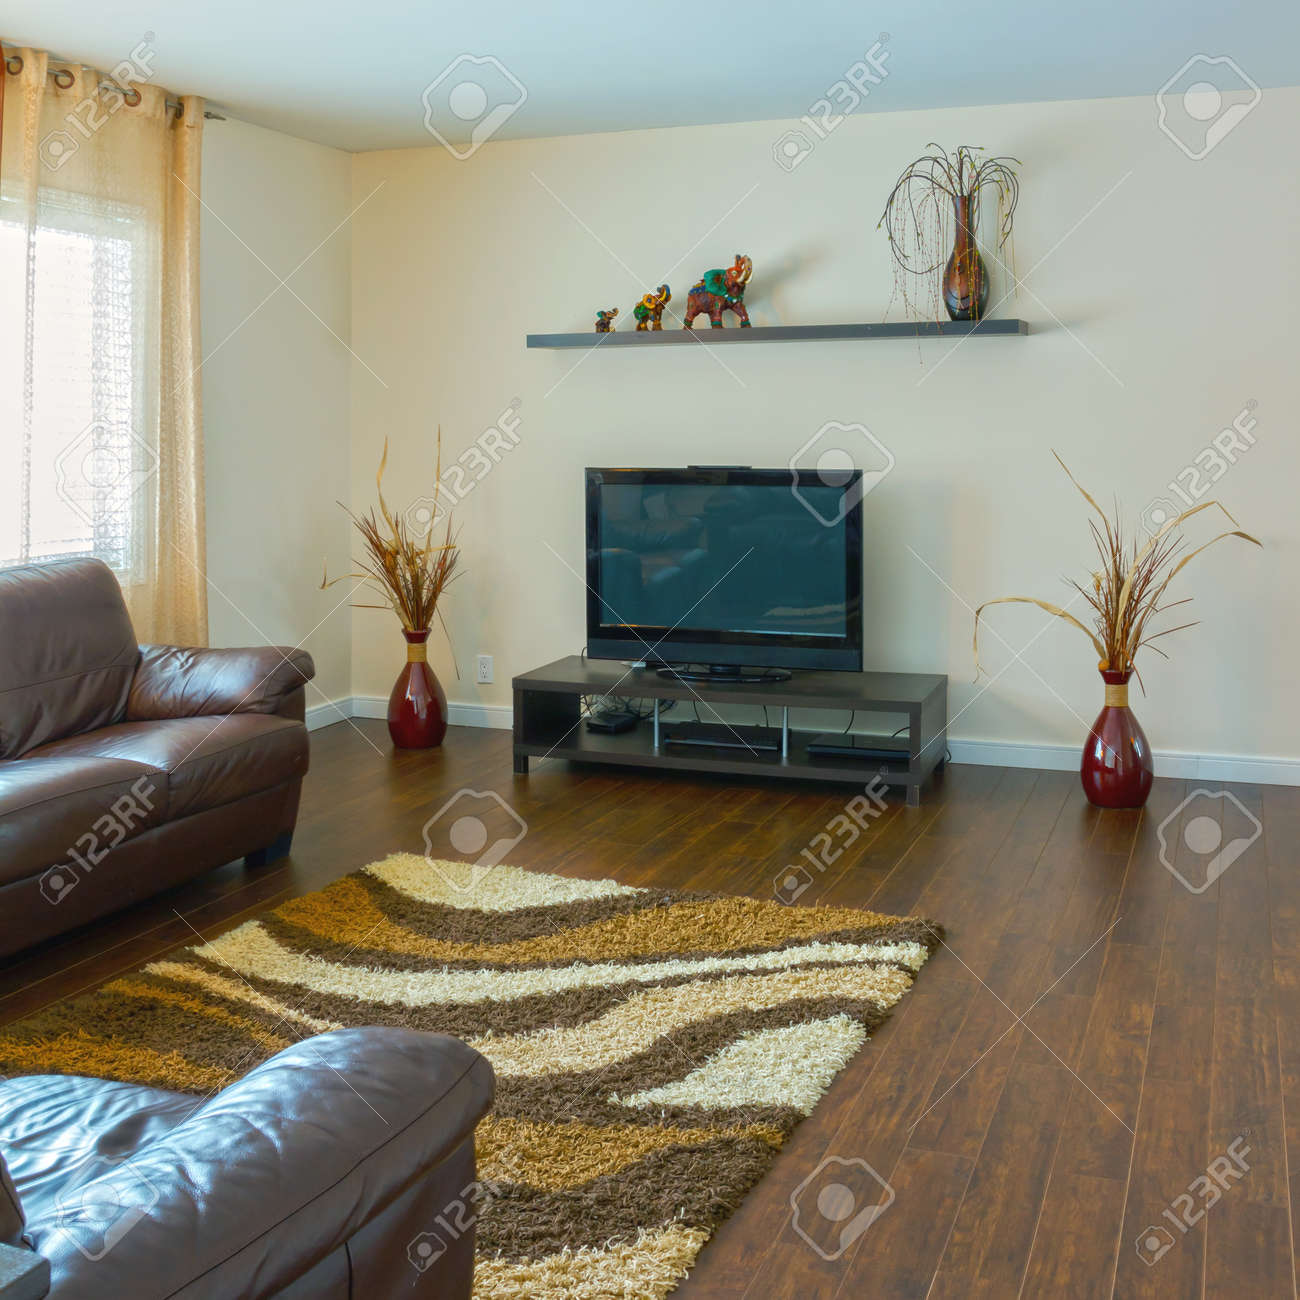 Interior design in a new house Stock Photo - 18988663